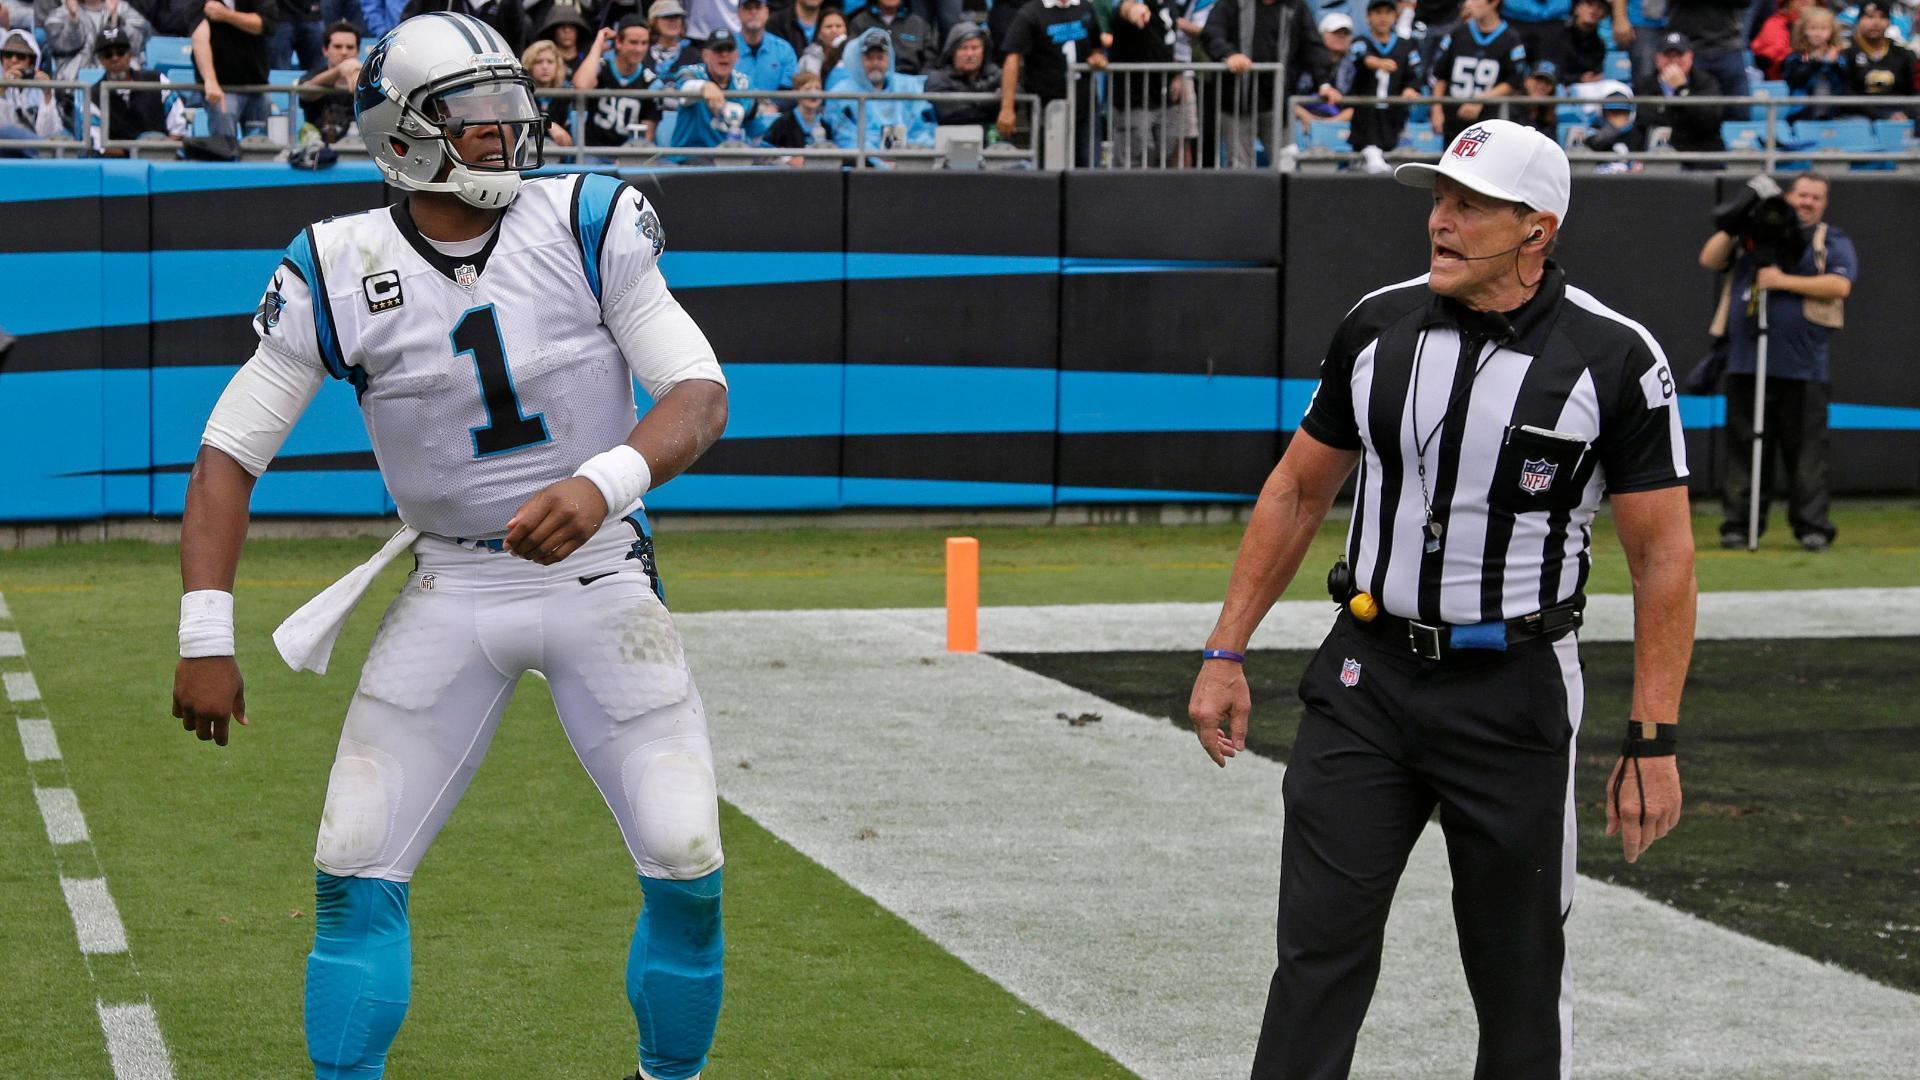 DeMaurice Smith: Cam Newton-Ed Hochuli incident much ado about nothing